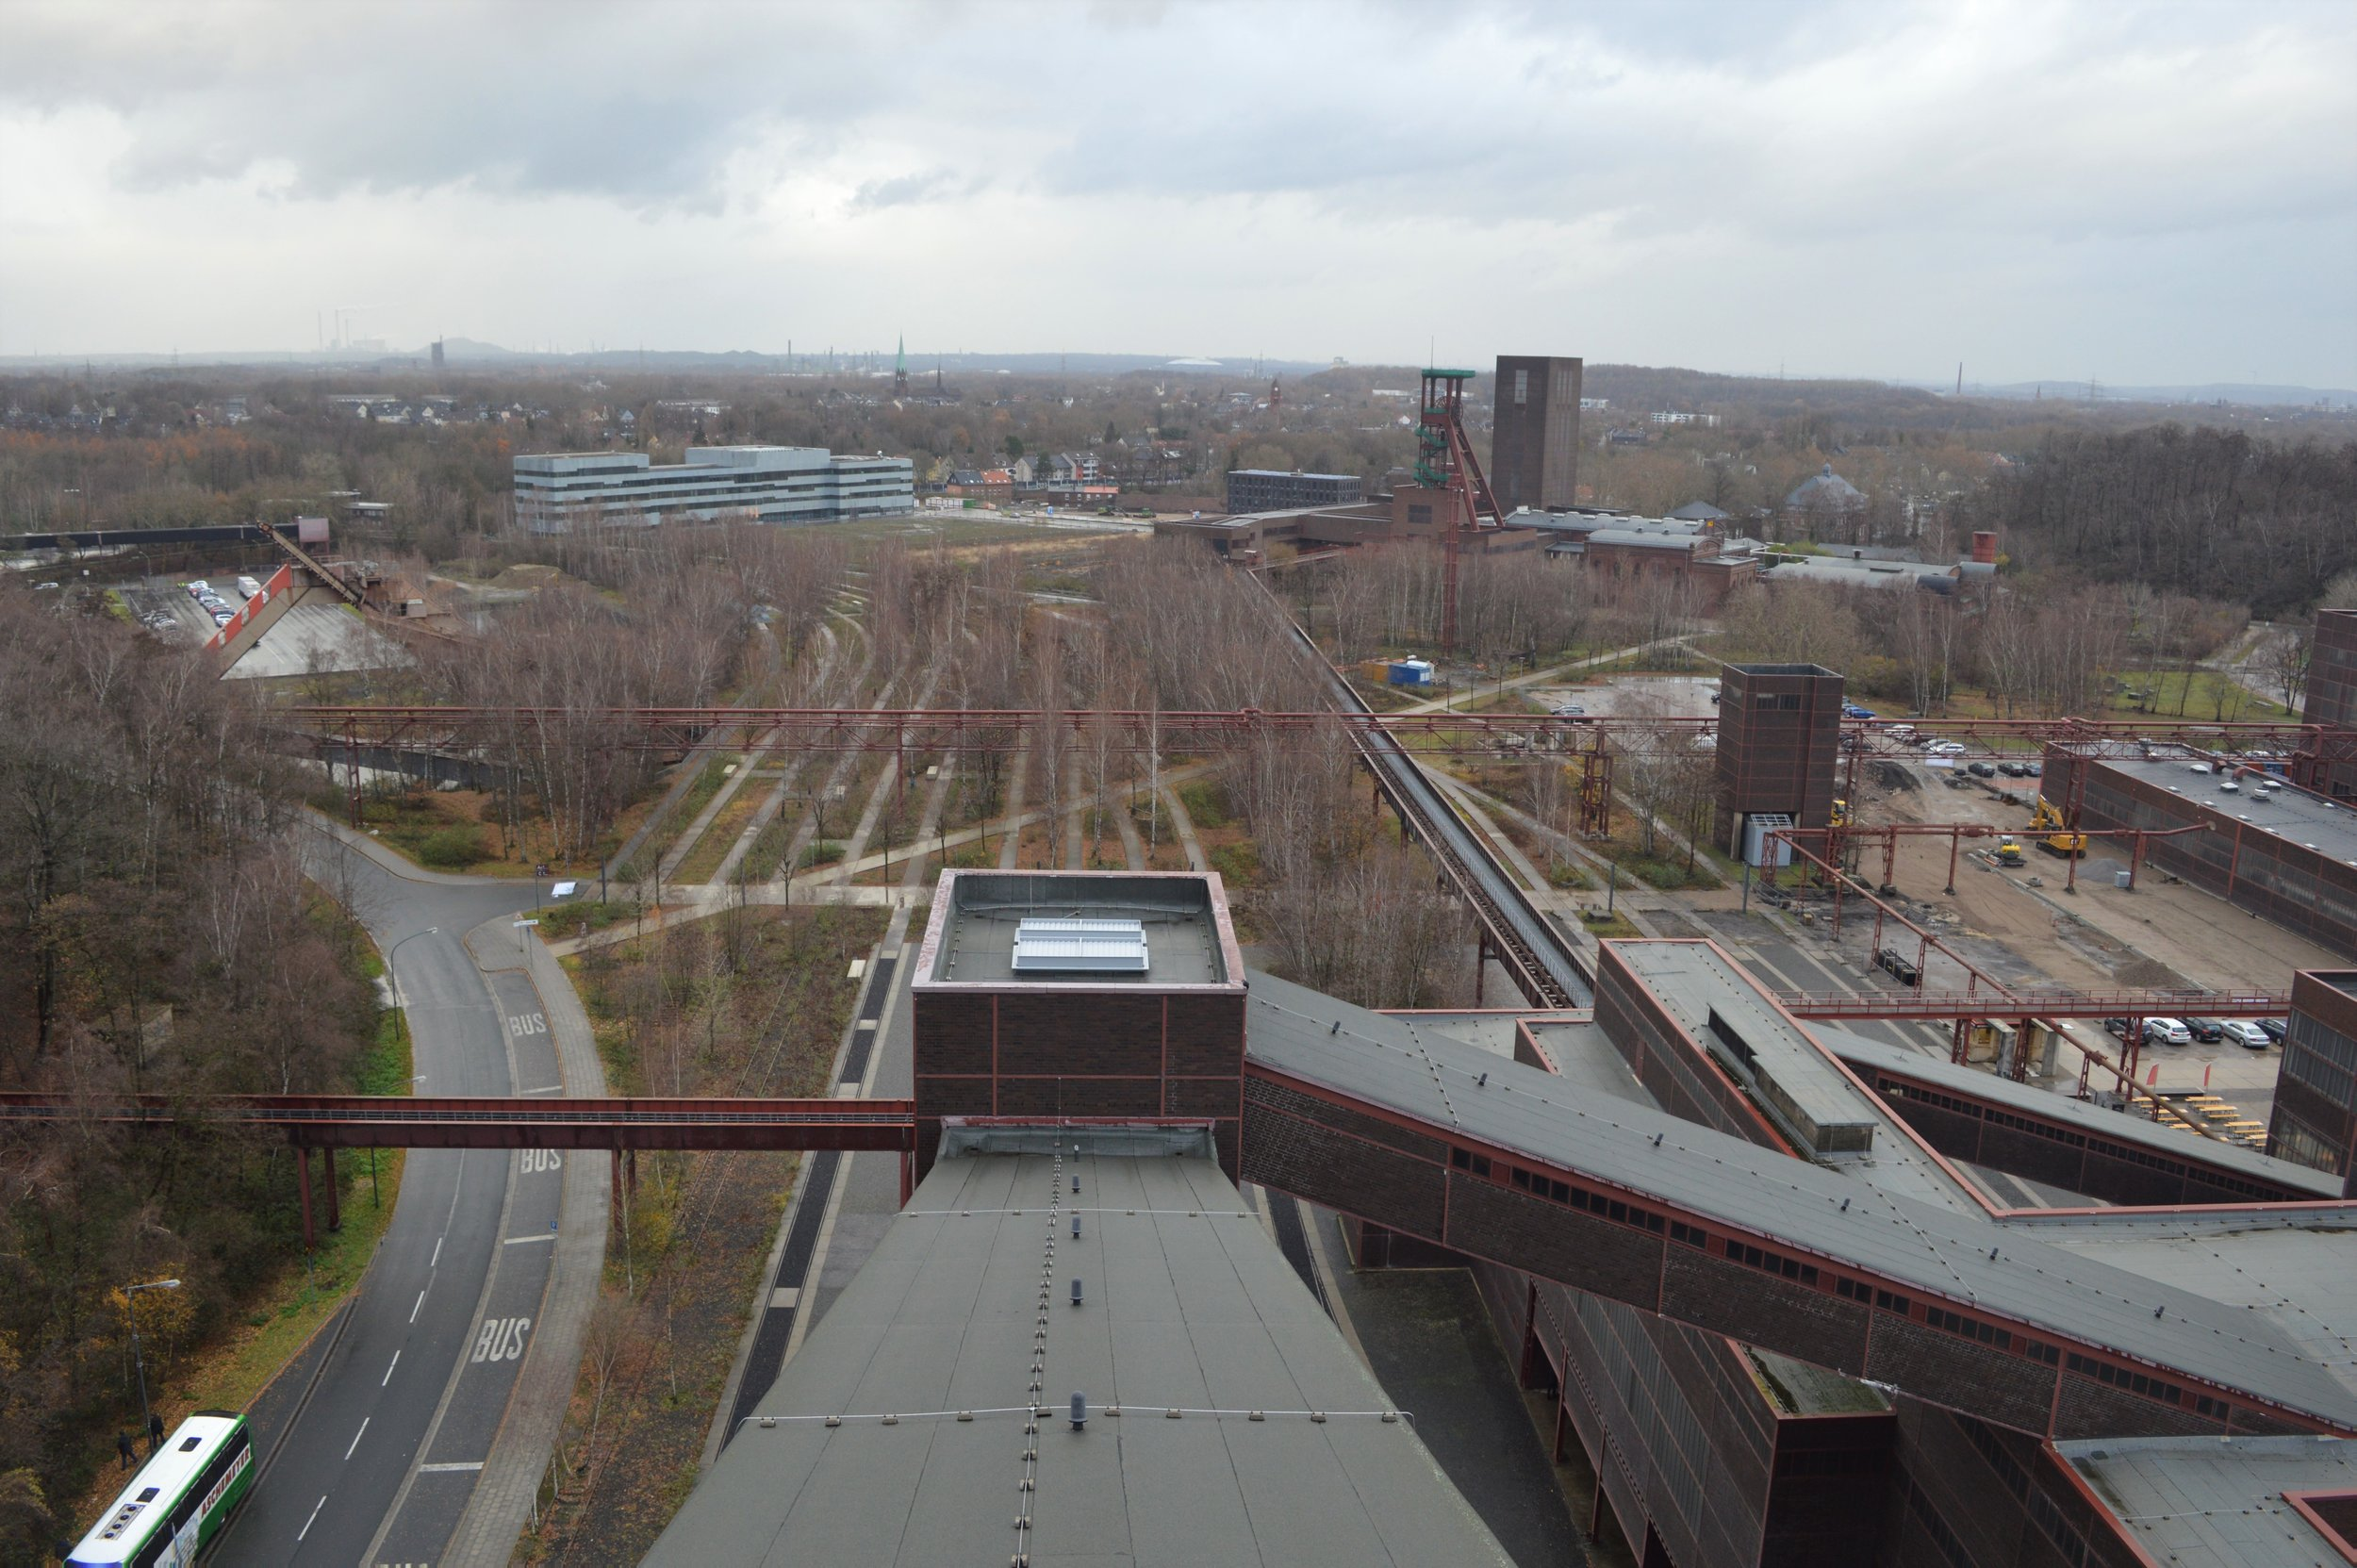 Zollverein viewed from the Ruhr Museum.